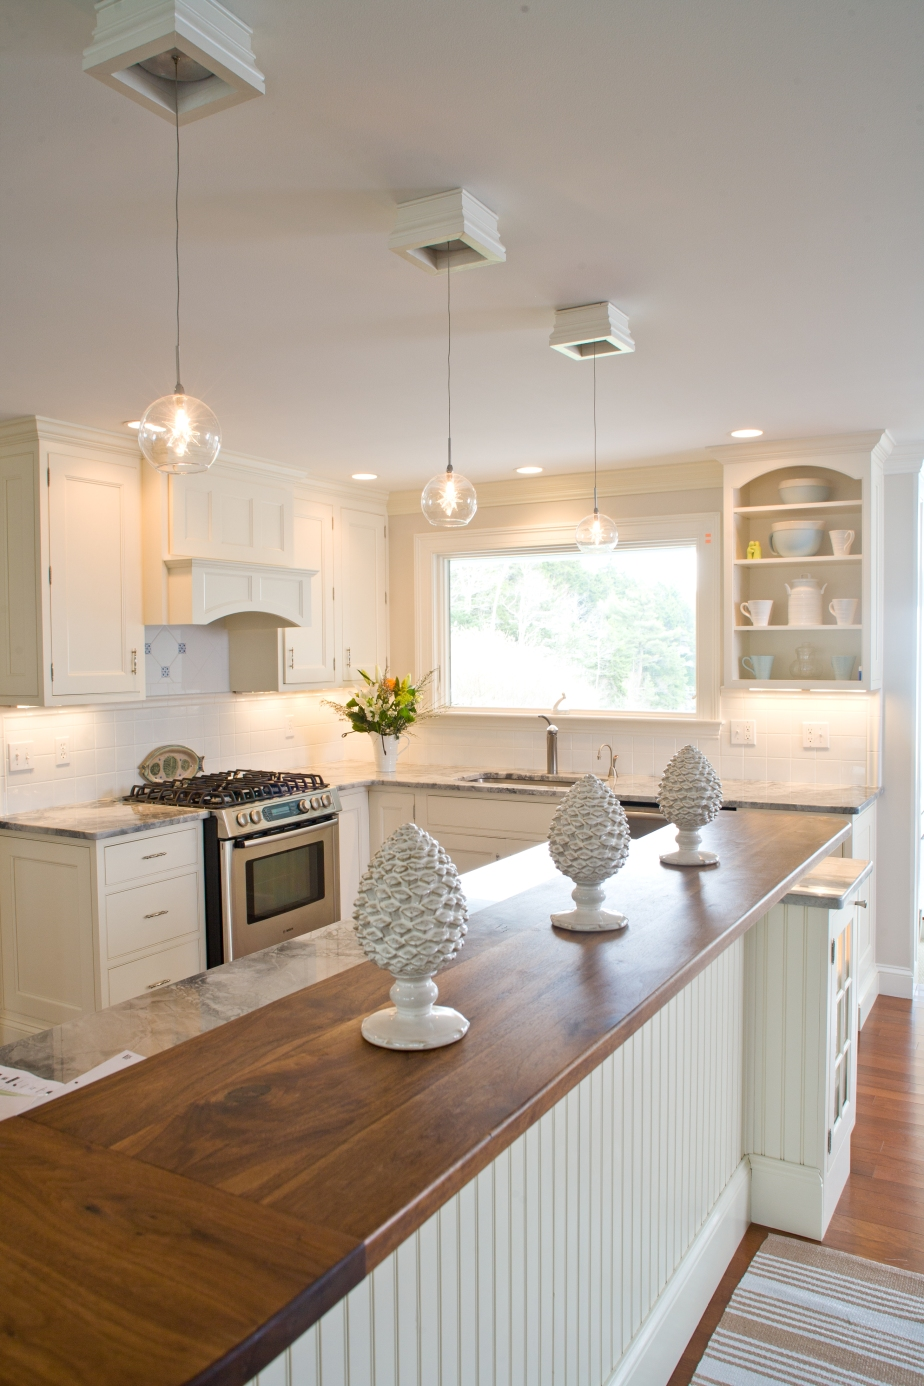 What you need to know before you order kitchen cabinets